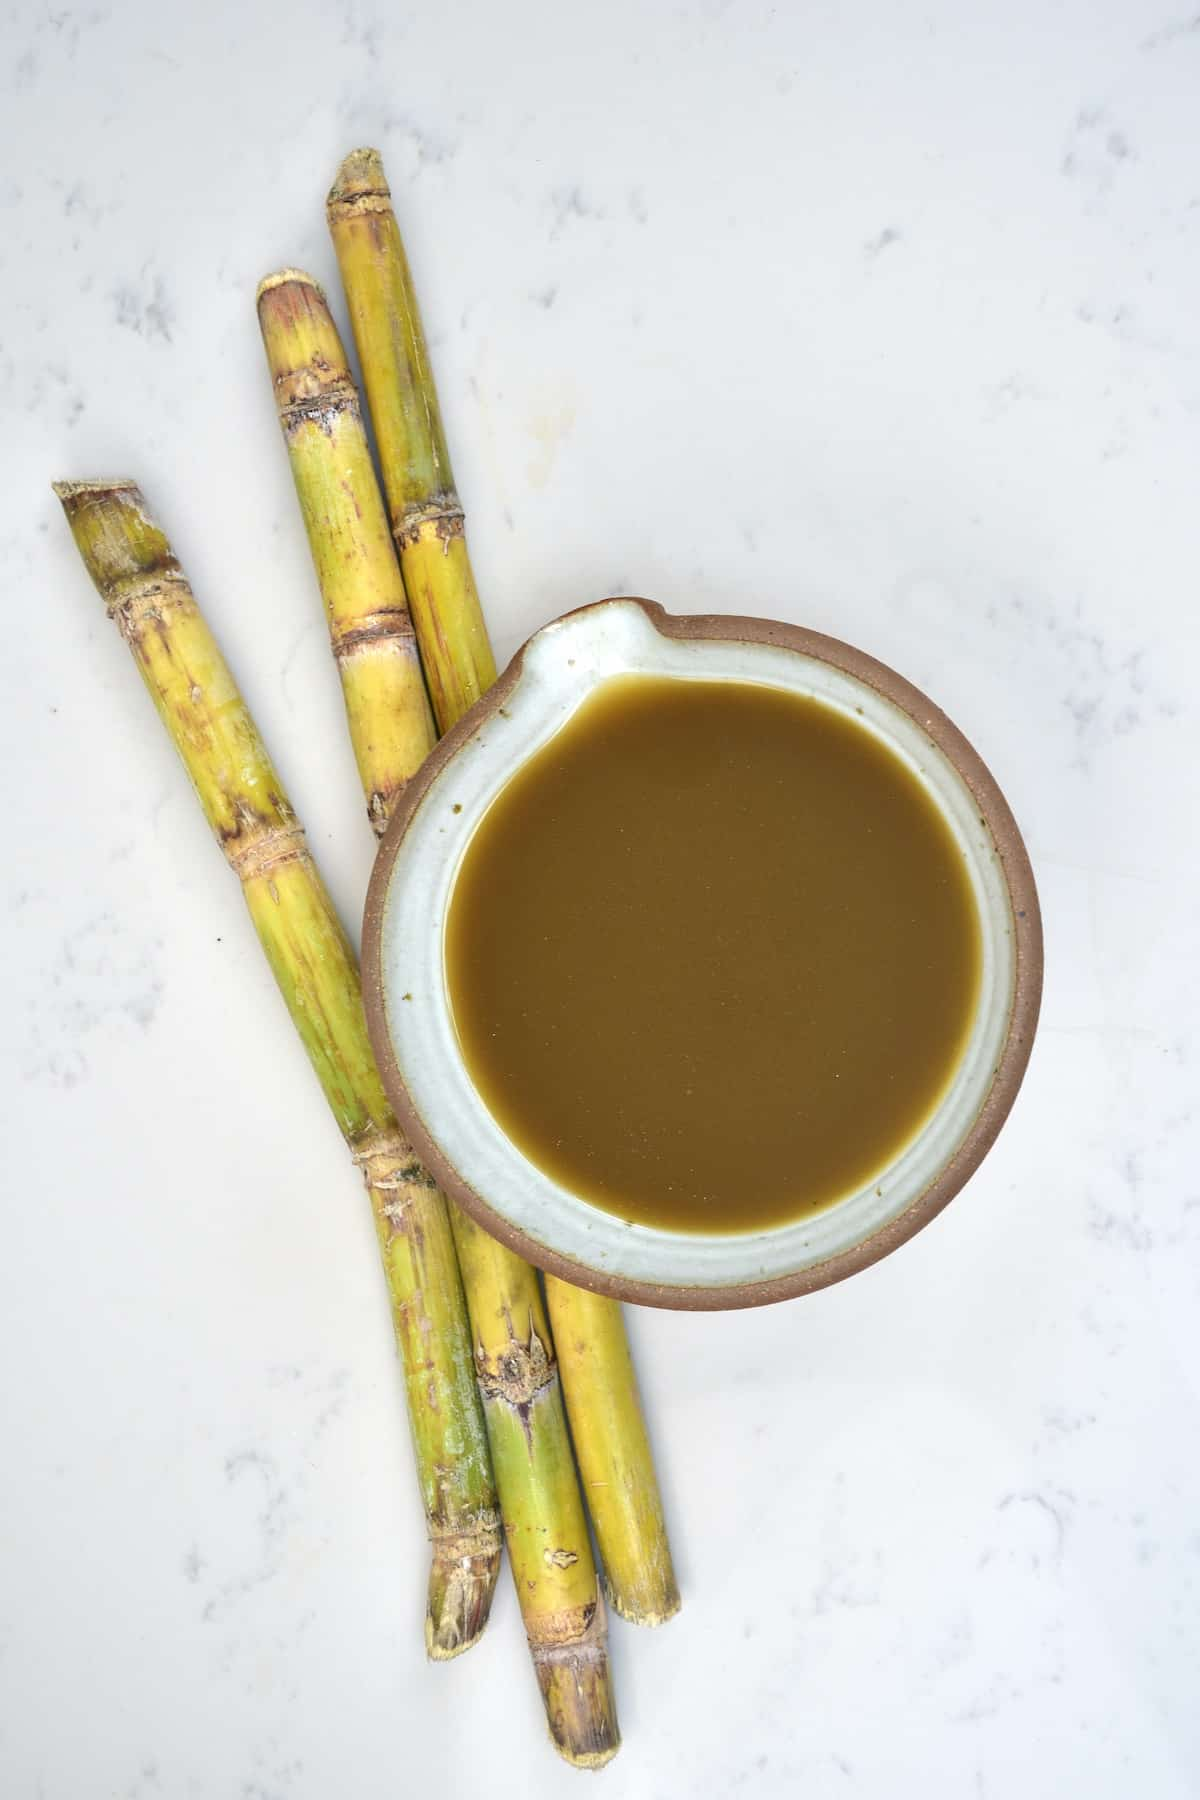 Sugar canes and cane juice